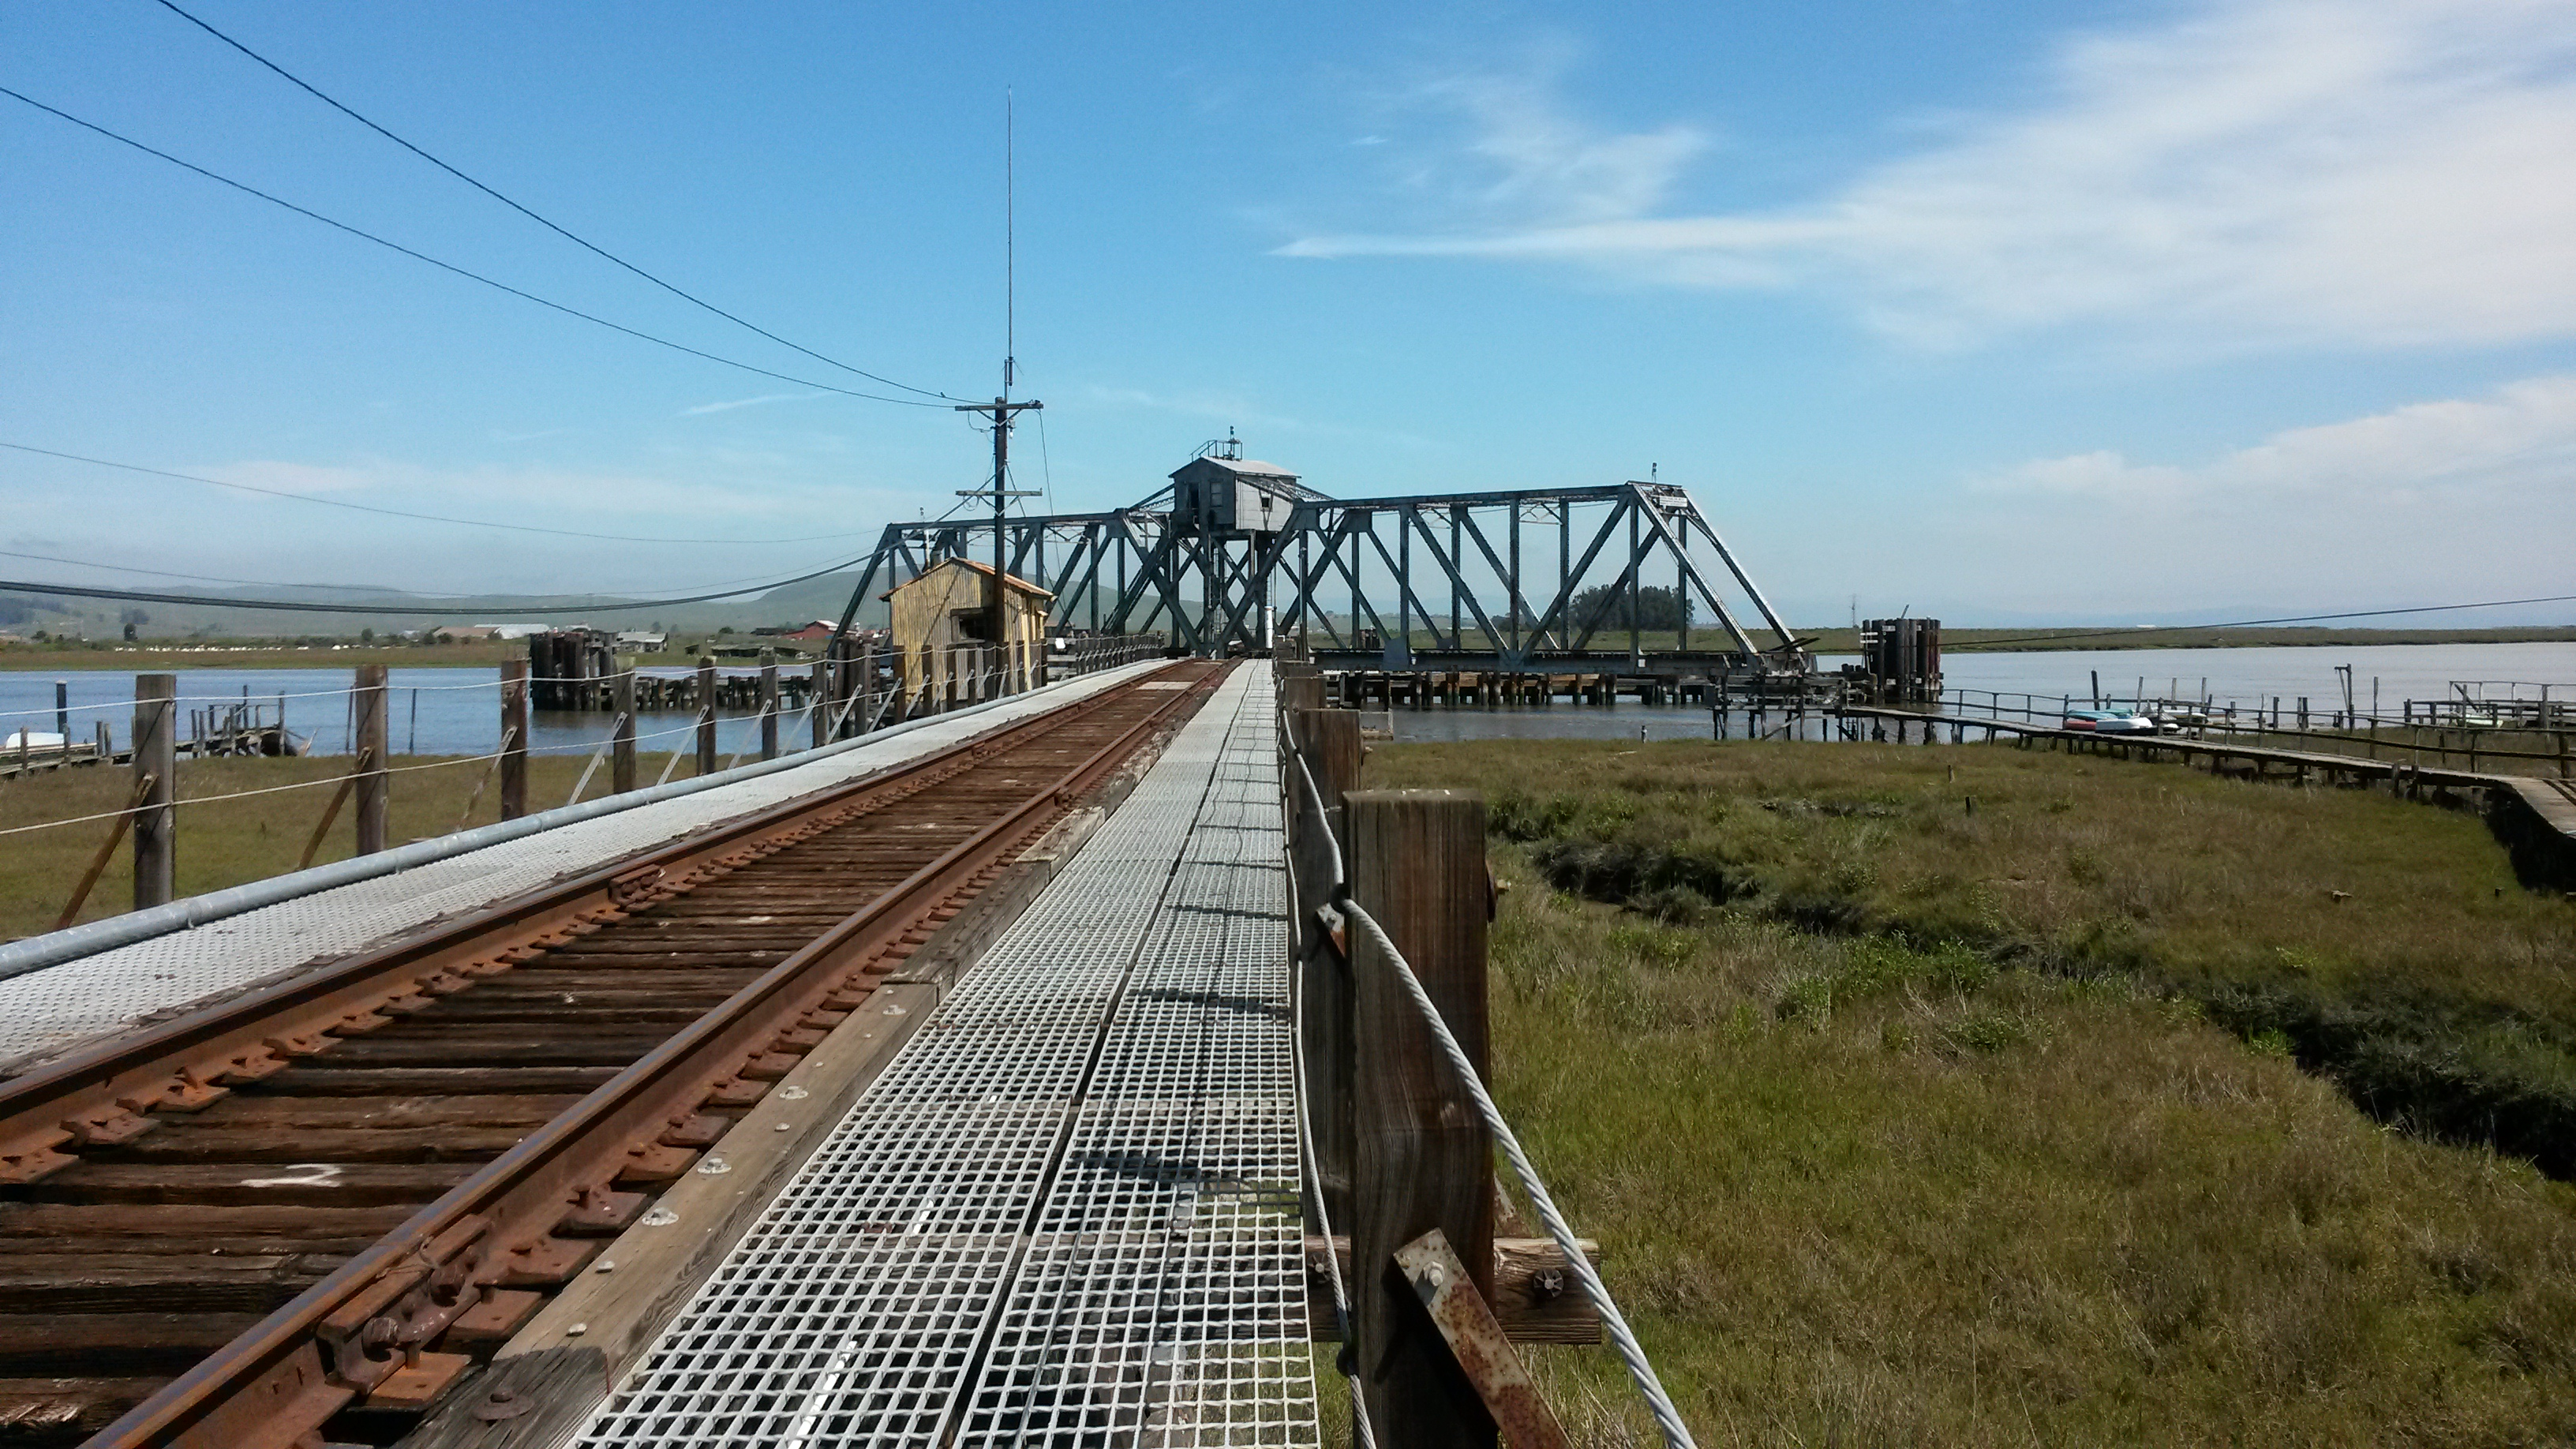 the bridges of the petaluma draw bridge novato train crossing petaluma river